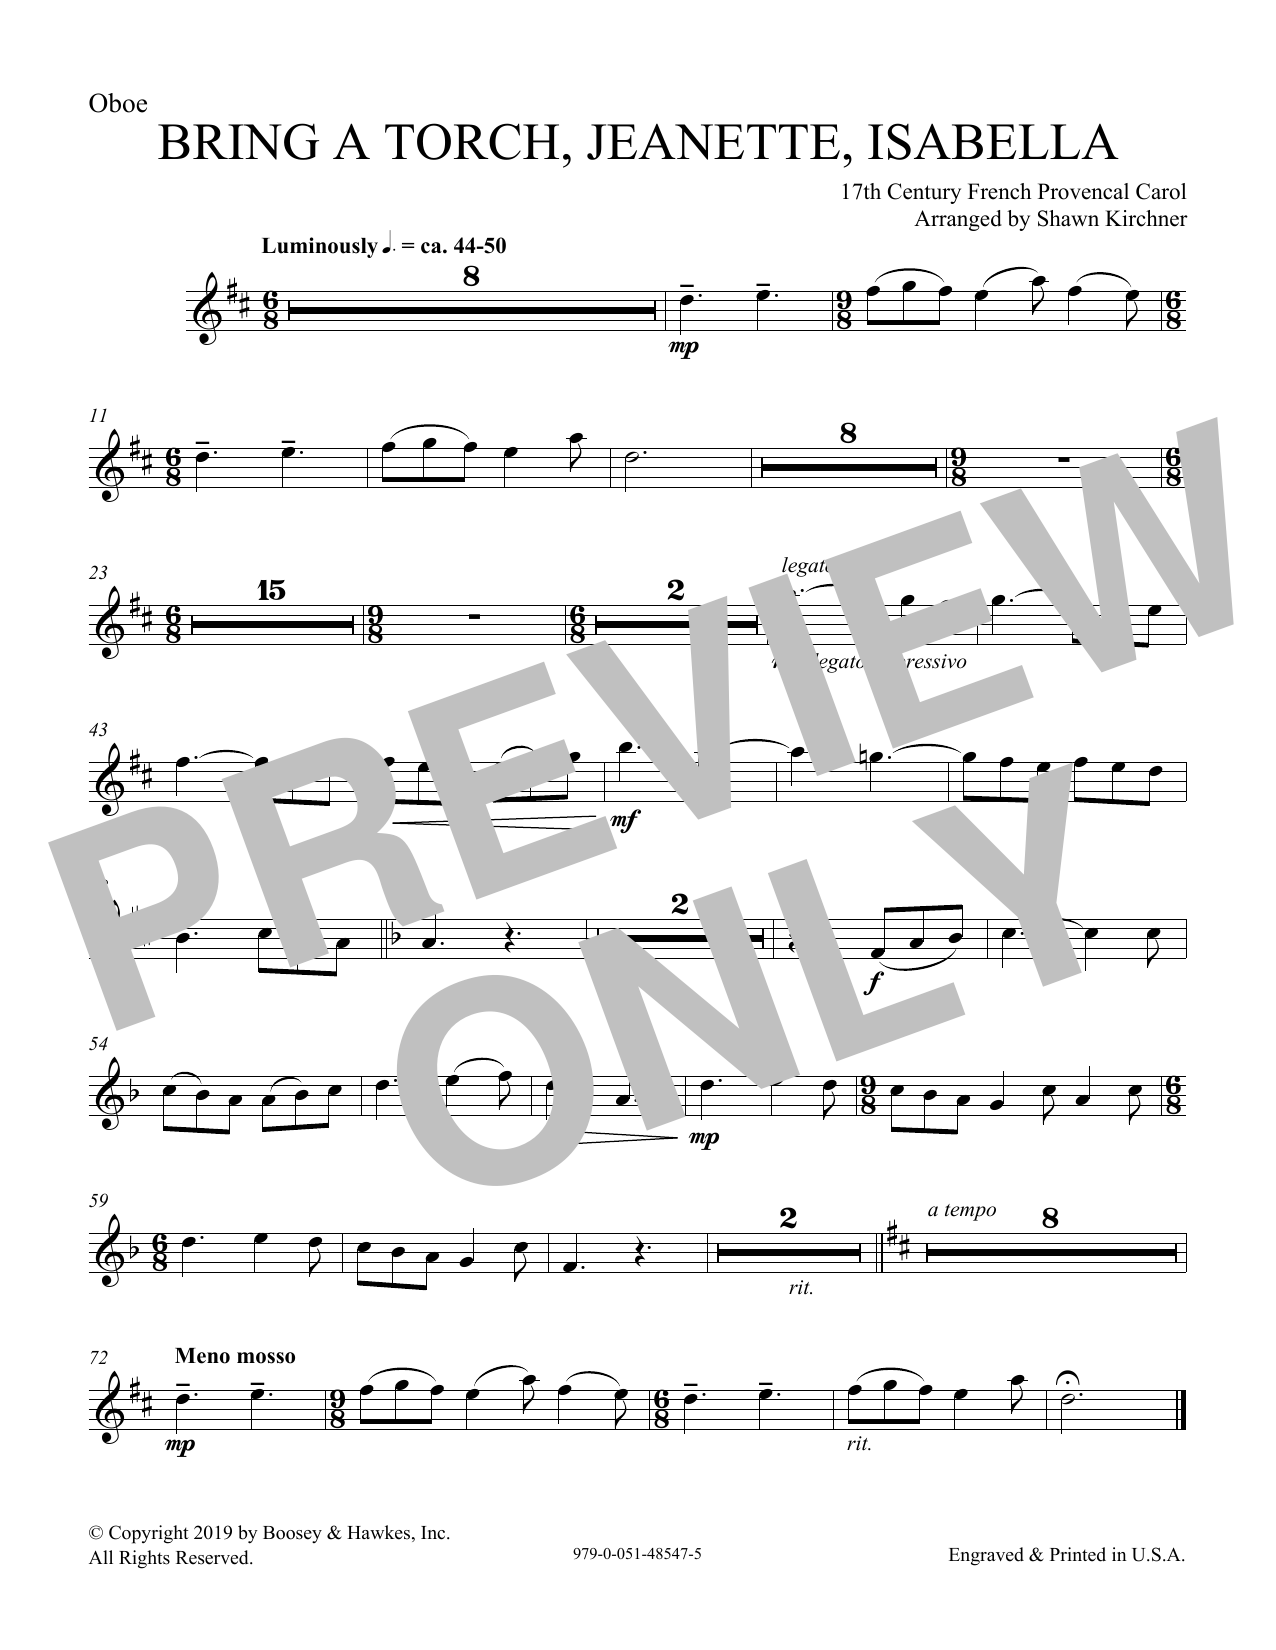 Download 17th Century French Provencal 'Bring a Torch, Jeanette, Isabella (arr. Shawn Kirchner) - Oboe' Digital Sheet Music Notes & Chords and start playing in minutes